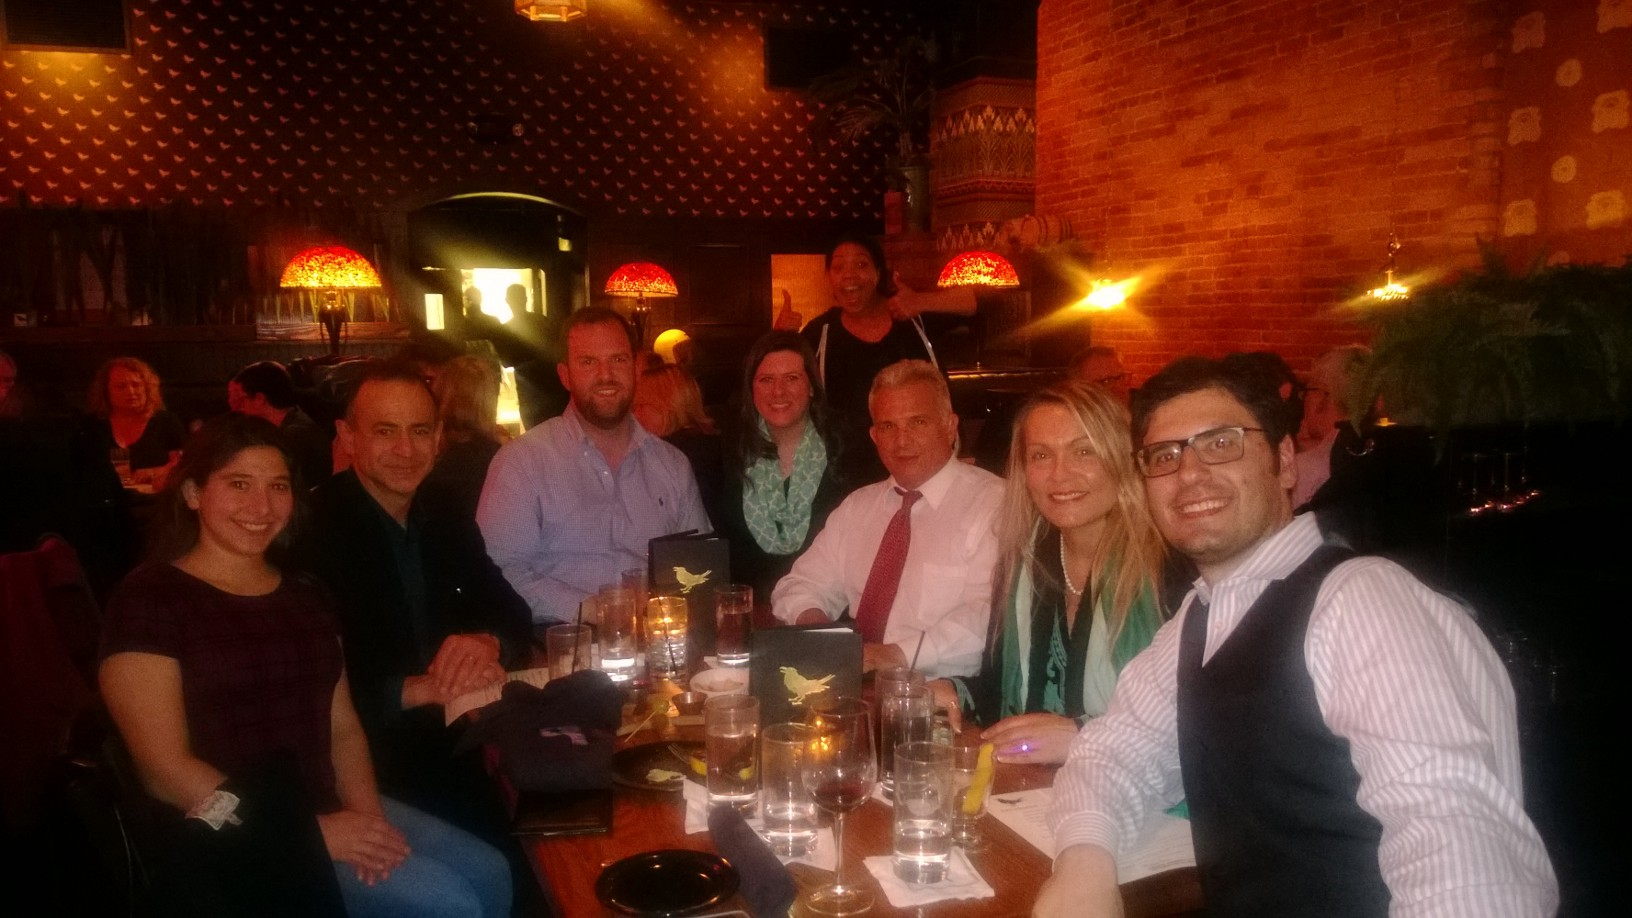 To reach out to attorneys outside the metro Detroit area, we held a Social Mixer at Ravens Club in Ann Arbor.